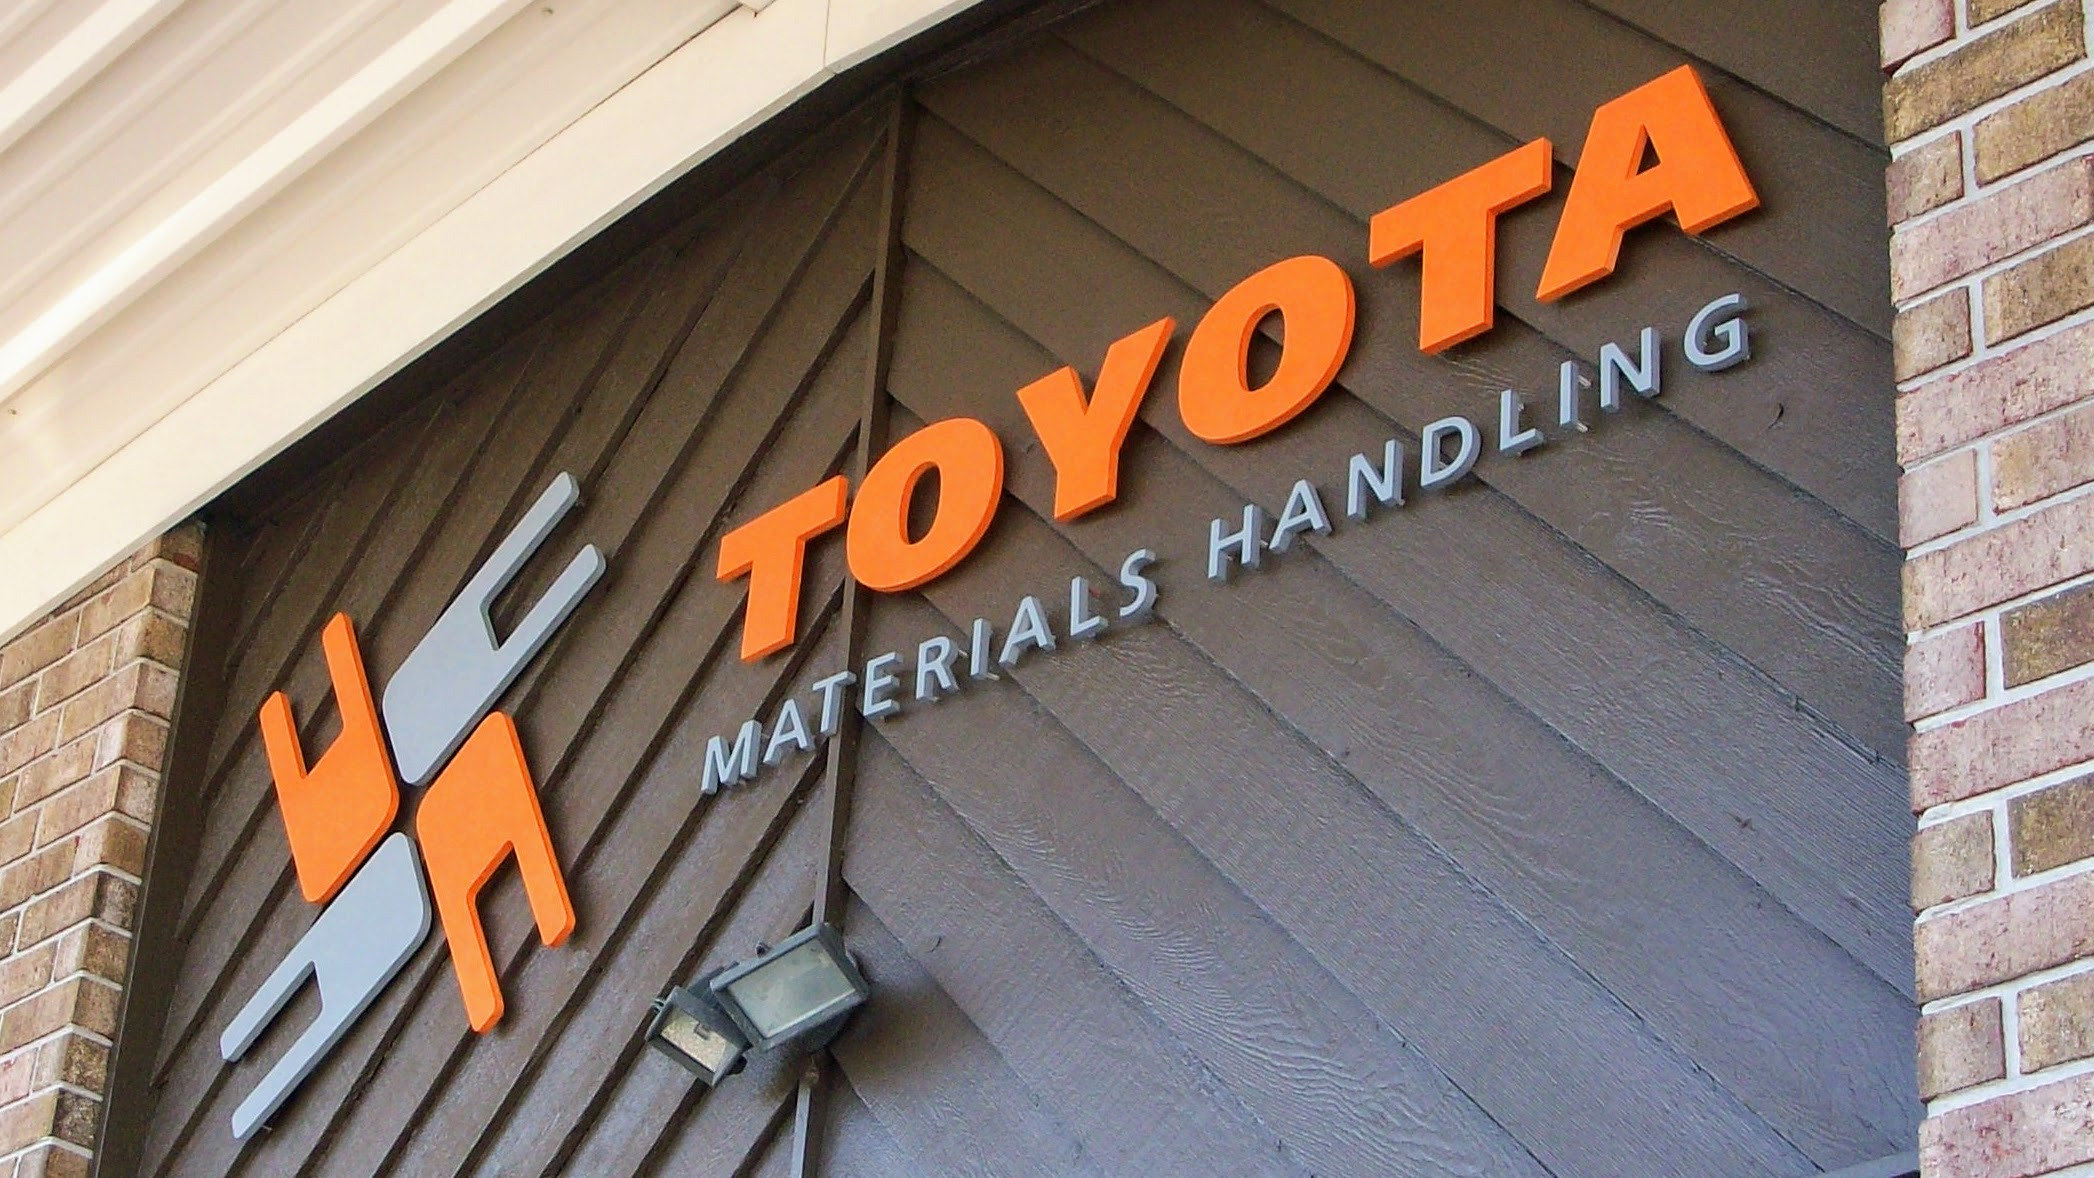 Exterior Dimensional Sign Letters and Logo